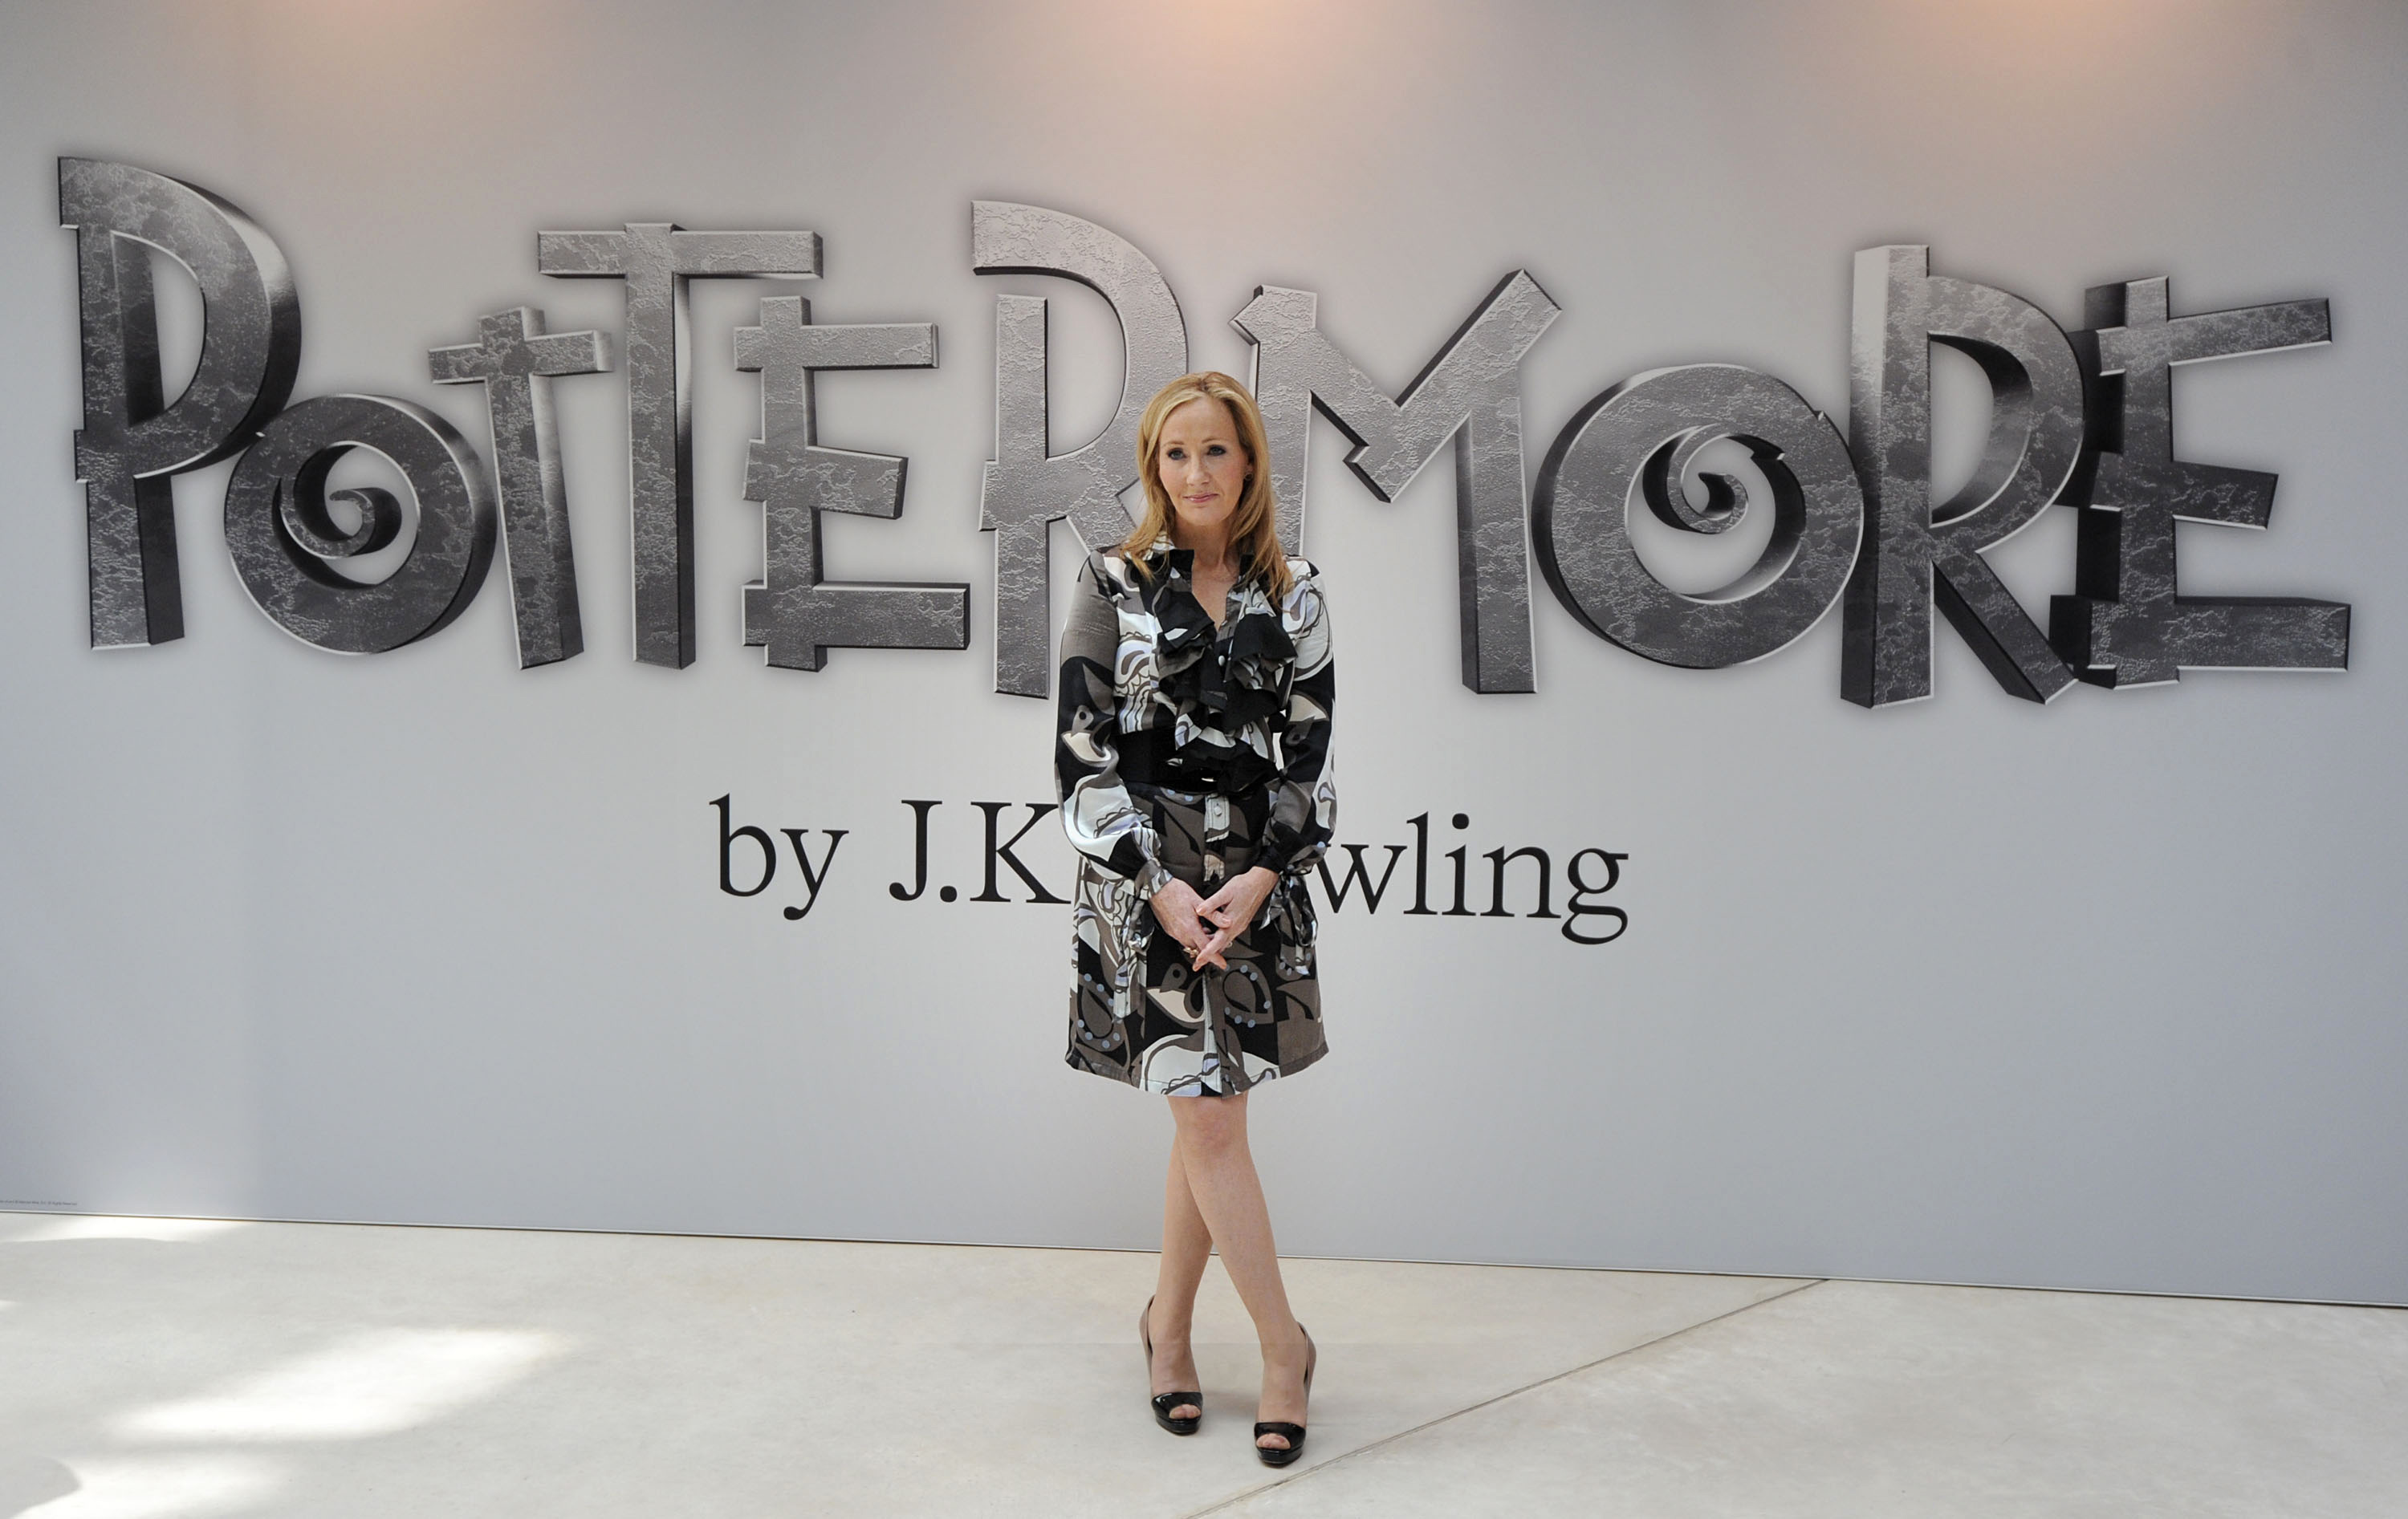 Harry Potter creator J.K. Rowling during the launch of Pottermore in central London on June 23, 2011.